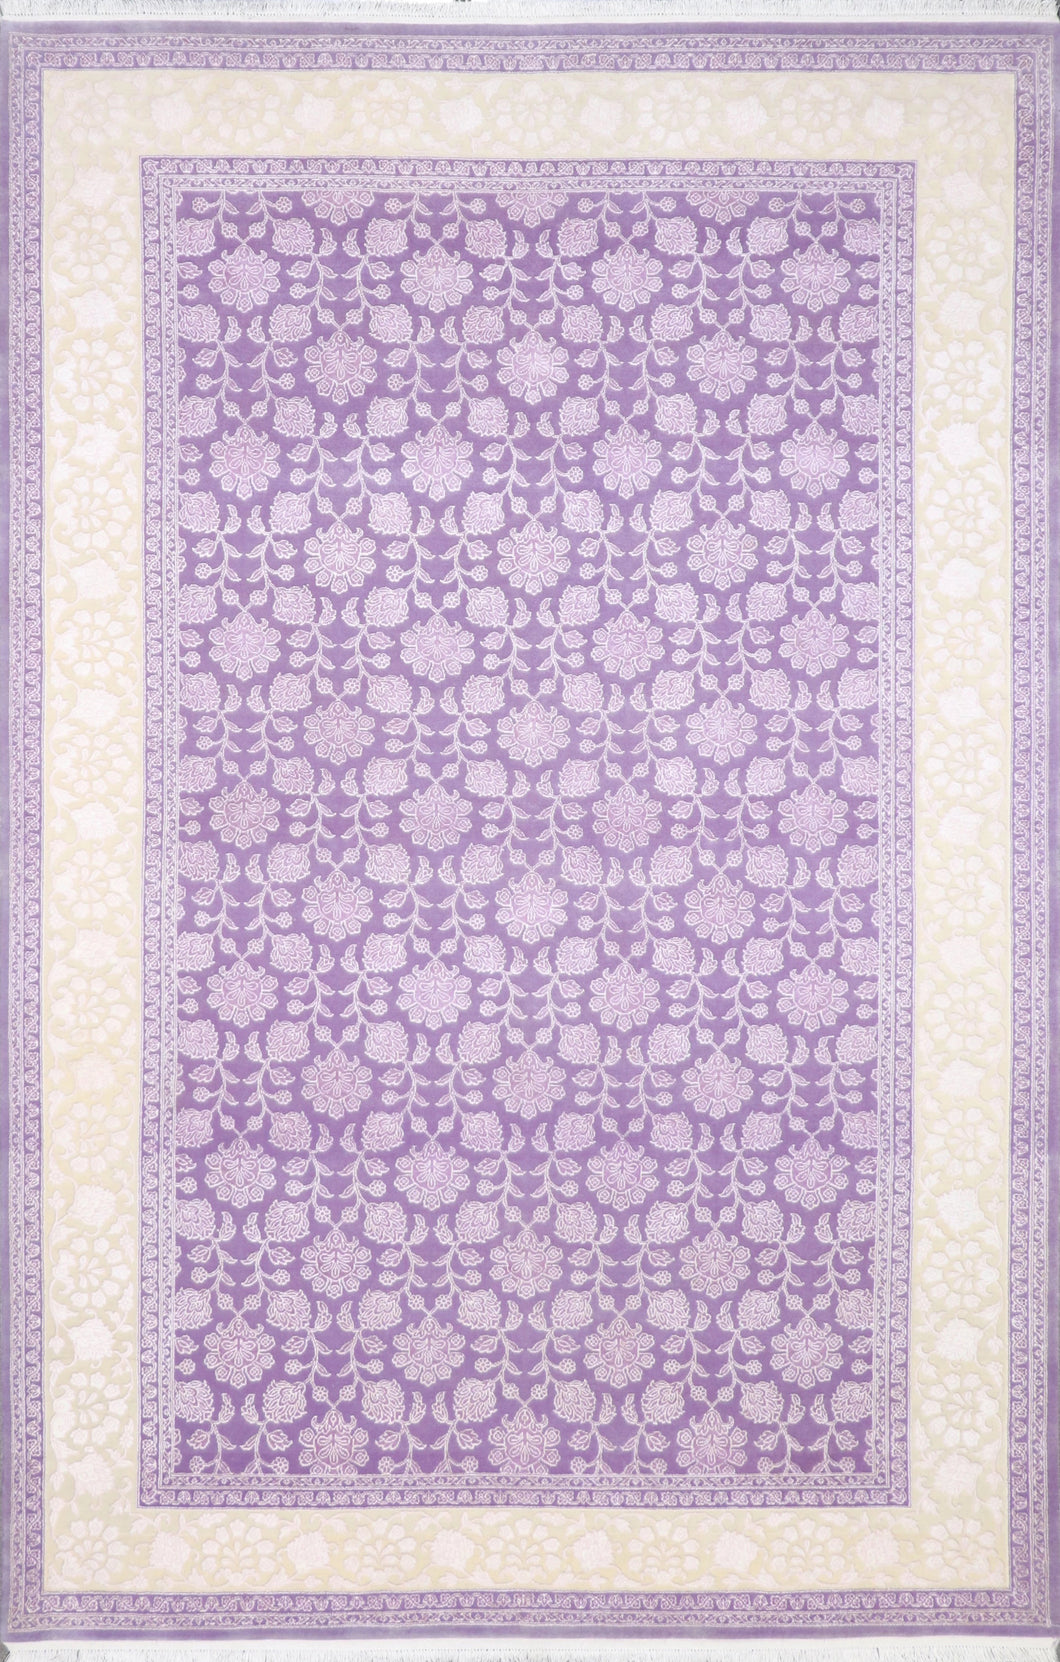 6'7'' X 10' Tone-On-Tone Lavender Wool & Silk Hand-Knotted Rug